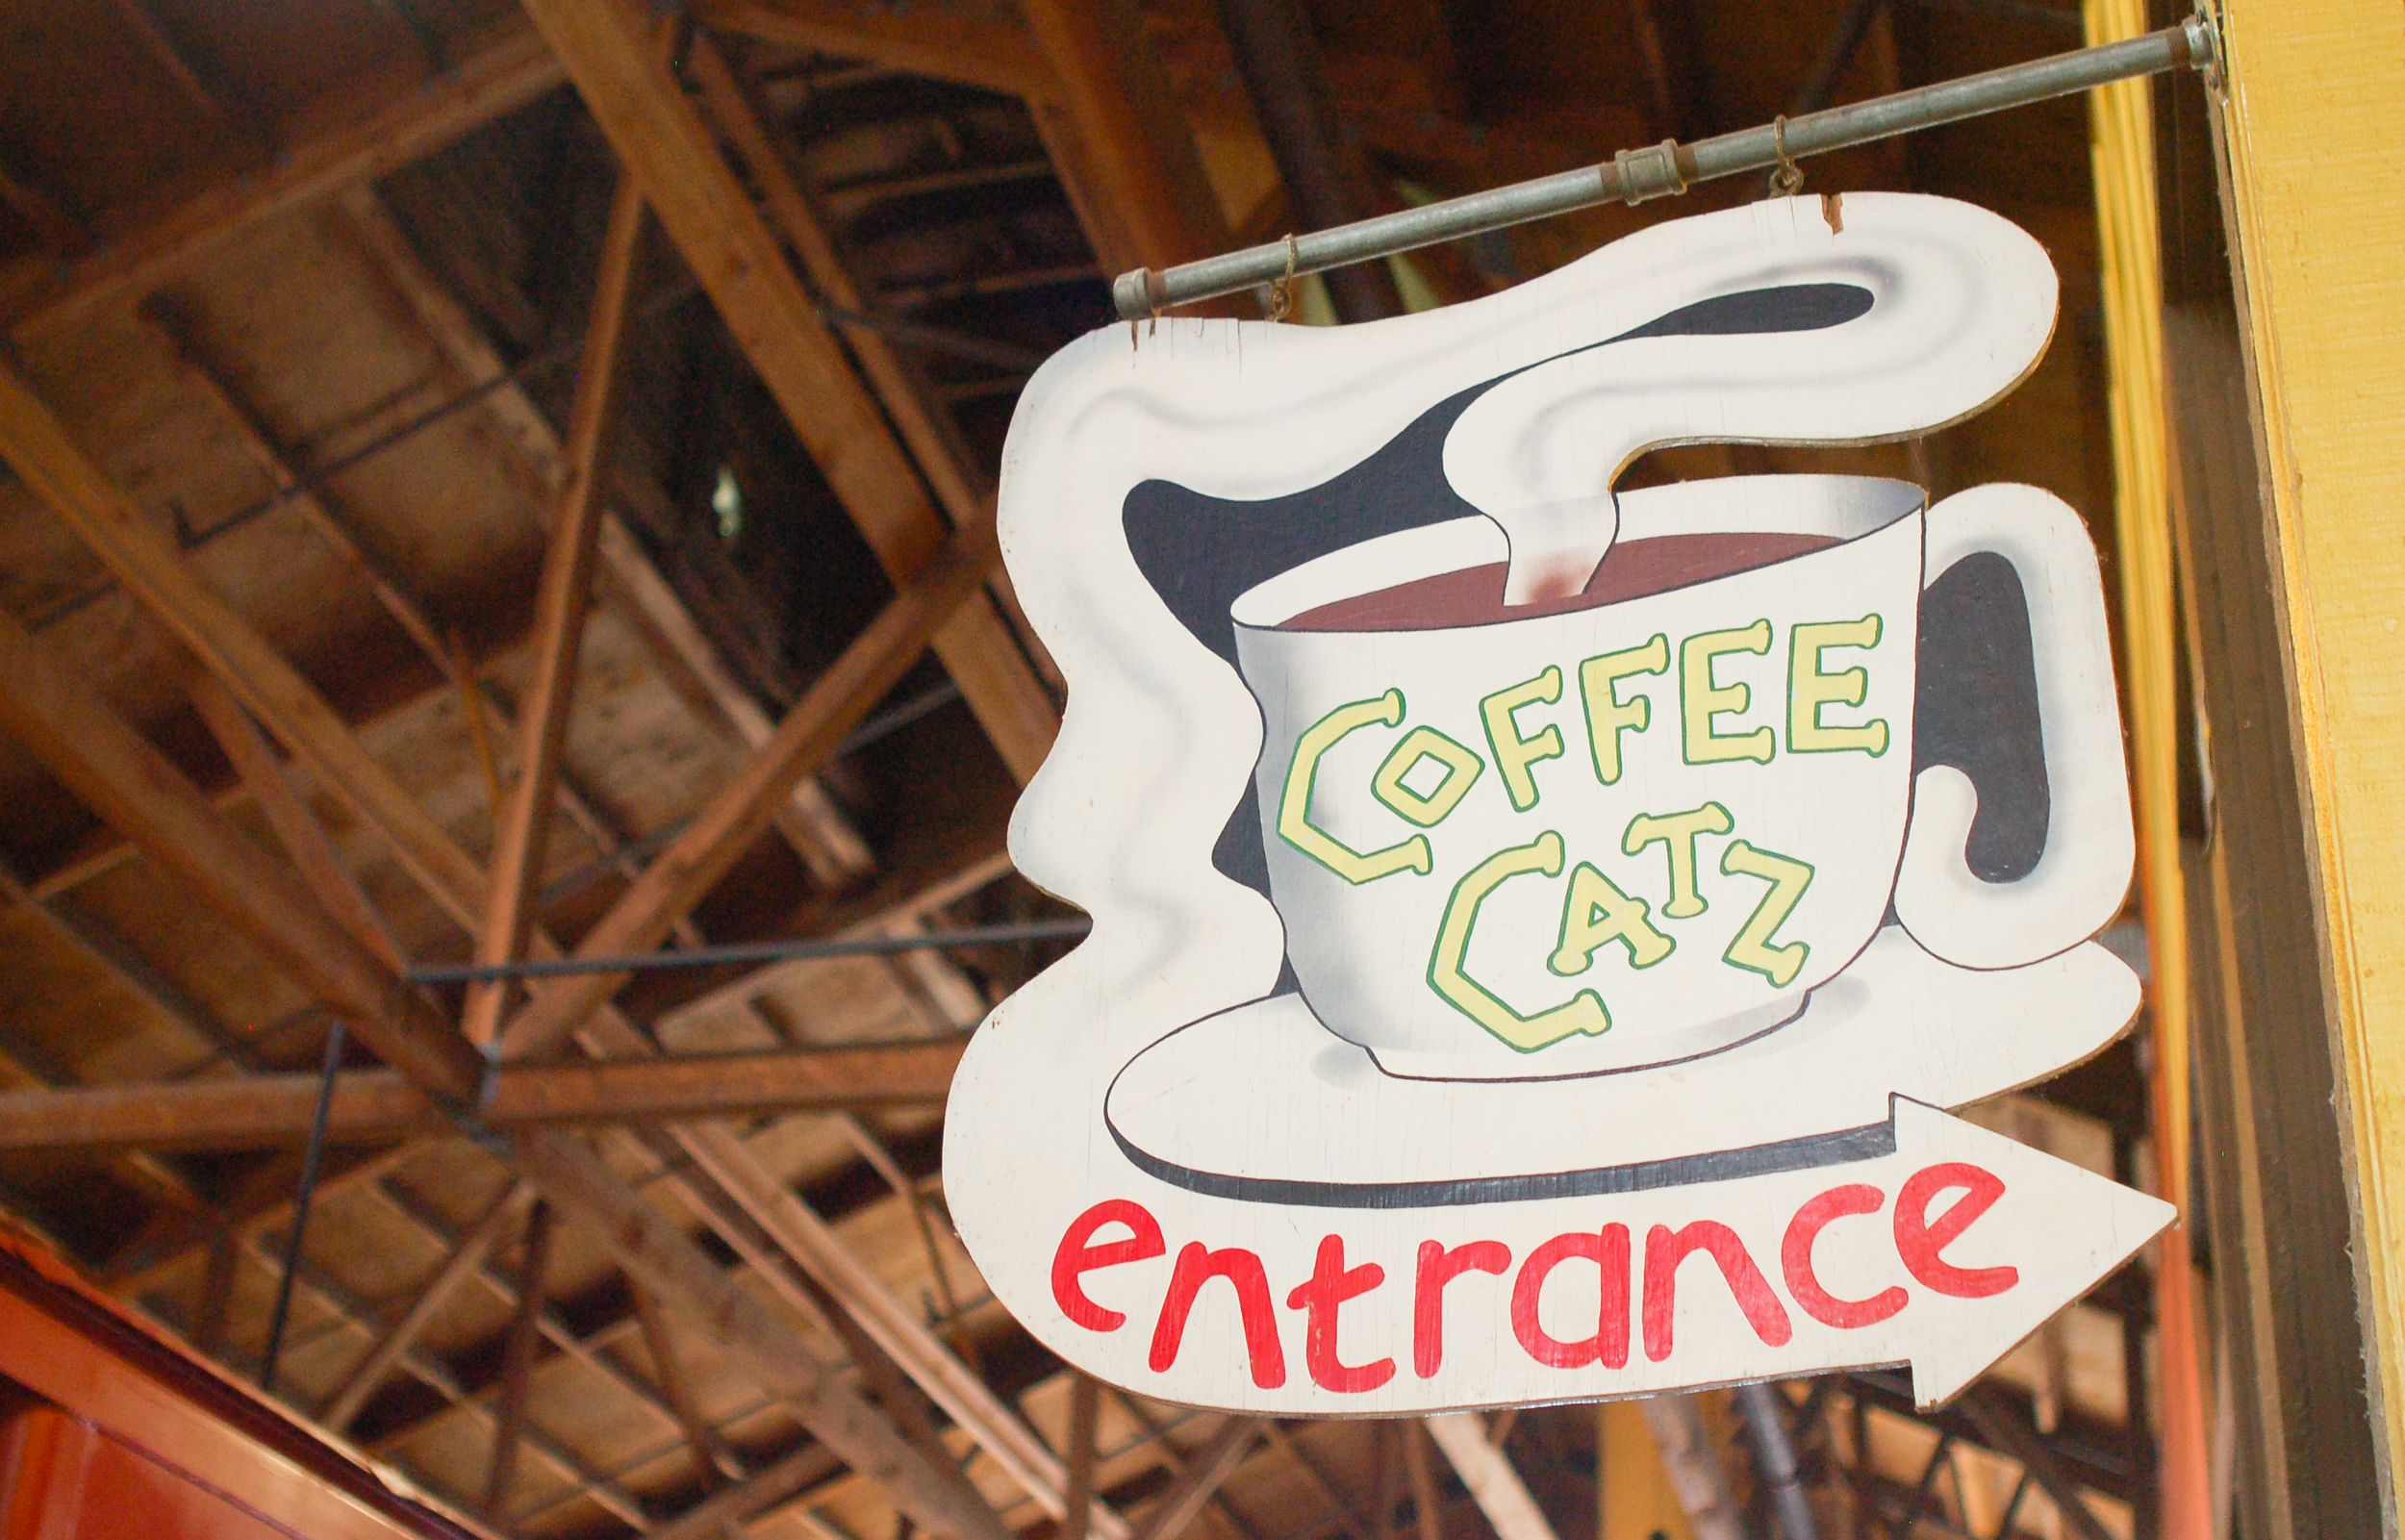 Delicious house-roasted coffee with a side of Sebastopol local charm